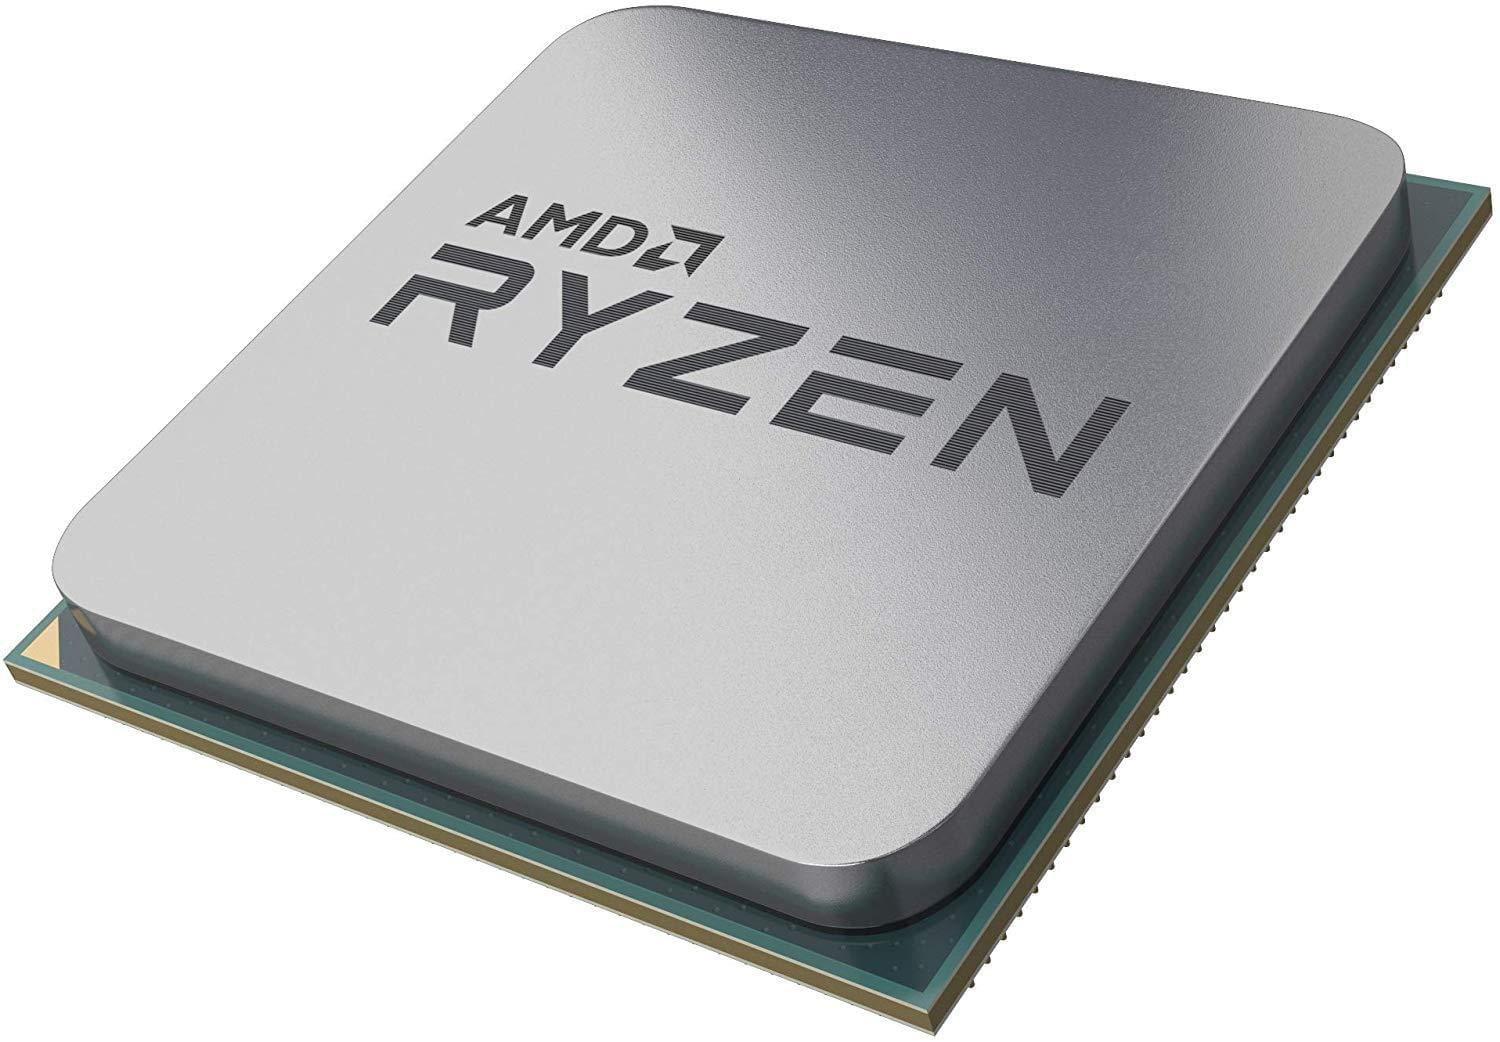 AMD Ryzen 5 1400 3.4GHz Socket AM4 Box YD1400BBAEBOX